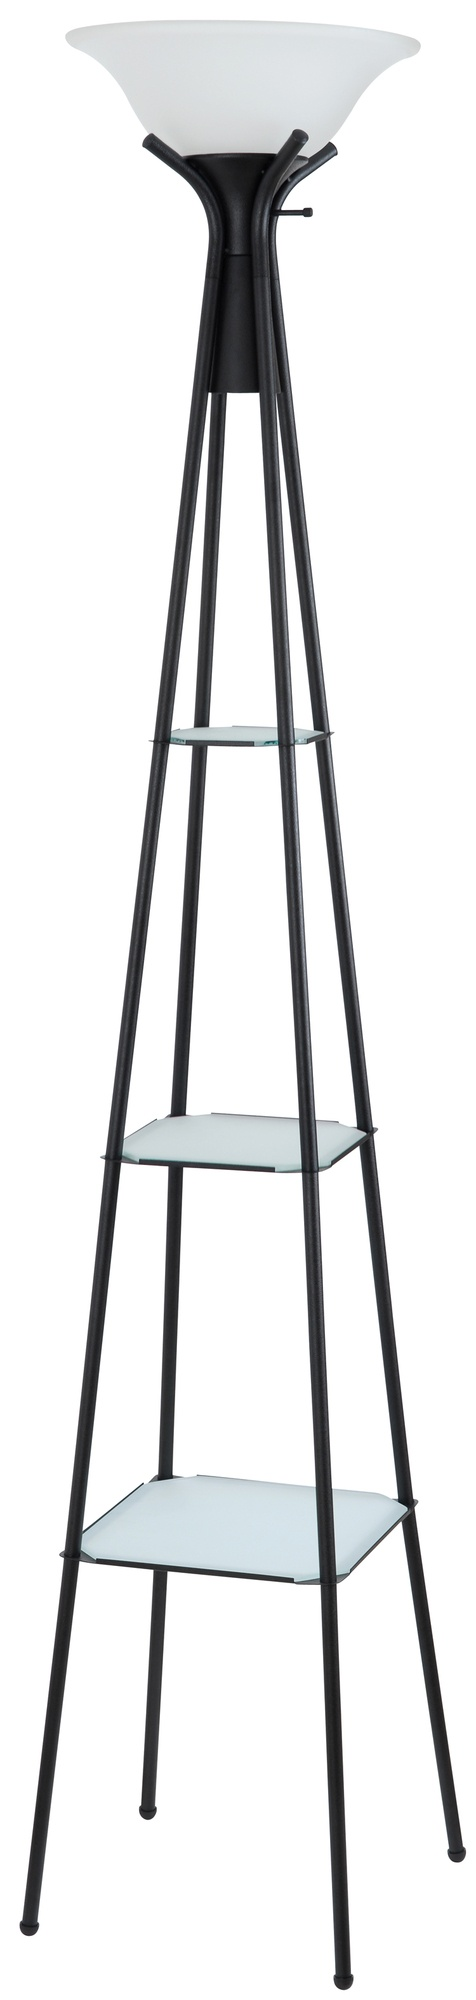 Mainstays Torchiere Floor Lamp With, Floor Lamps With Shelf Canada